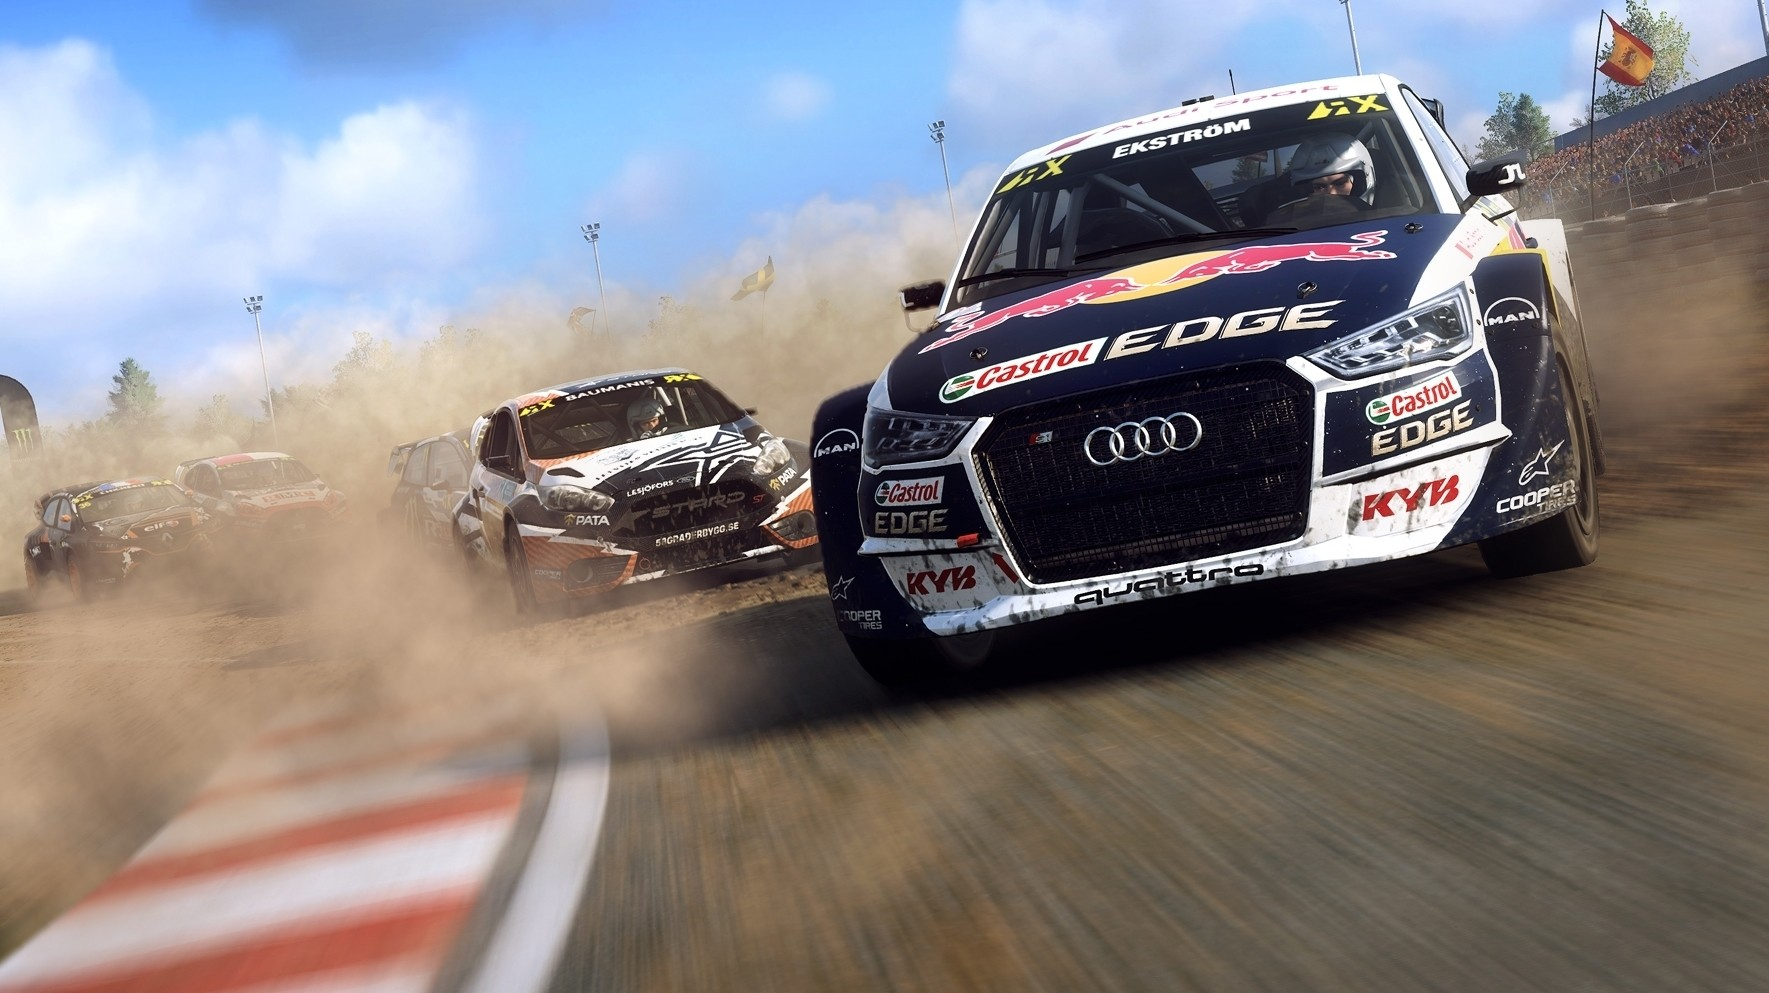 Intel Releases a Graphics Launch Driver for Dirt Rally 2 0